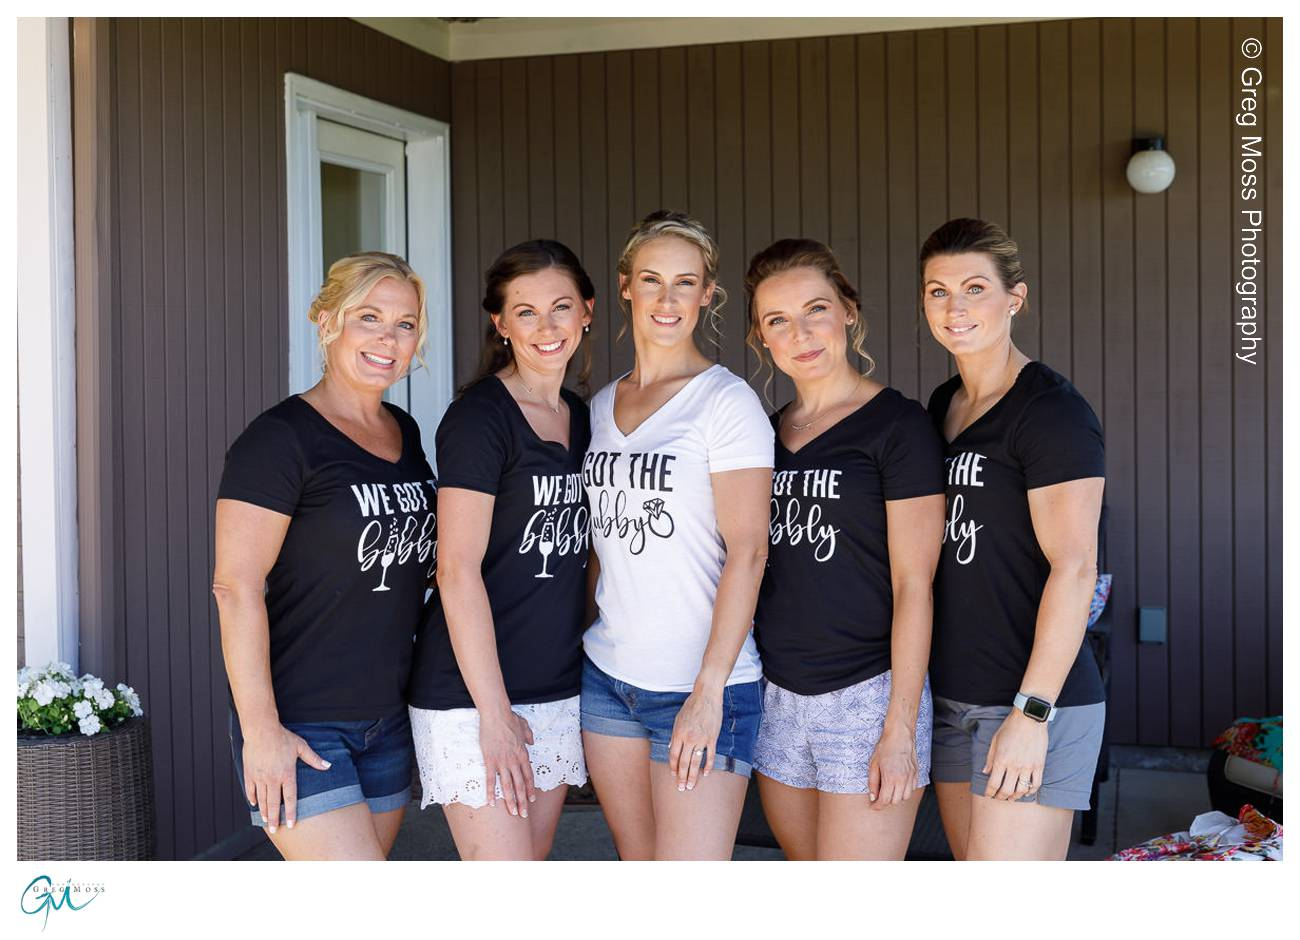 Bride and Bridesmaids in matching t shirts